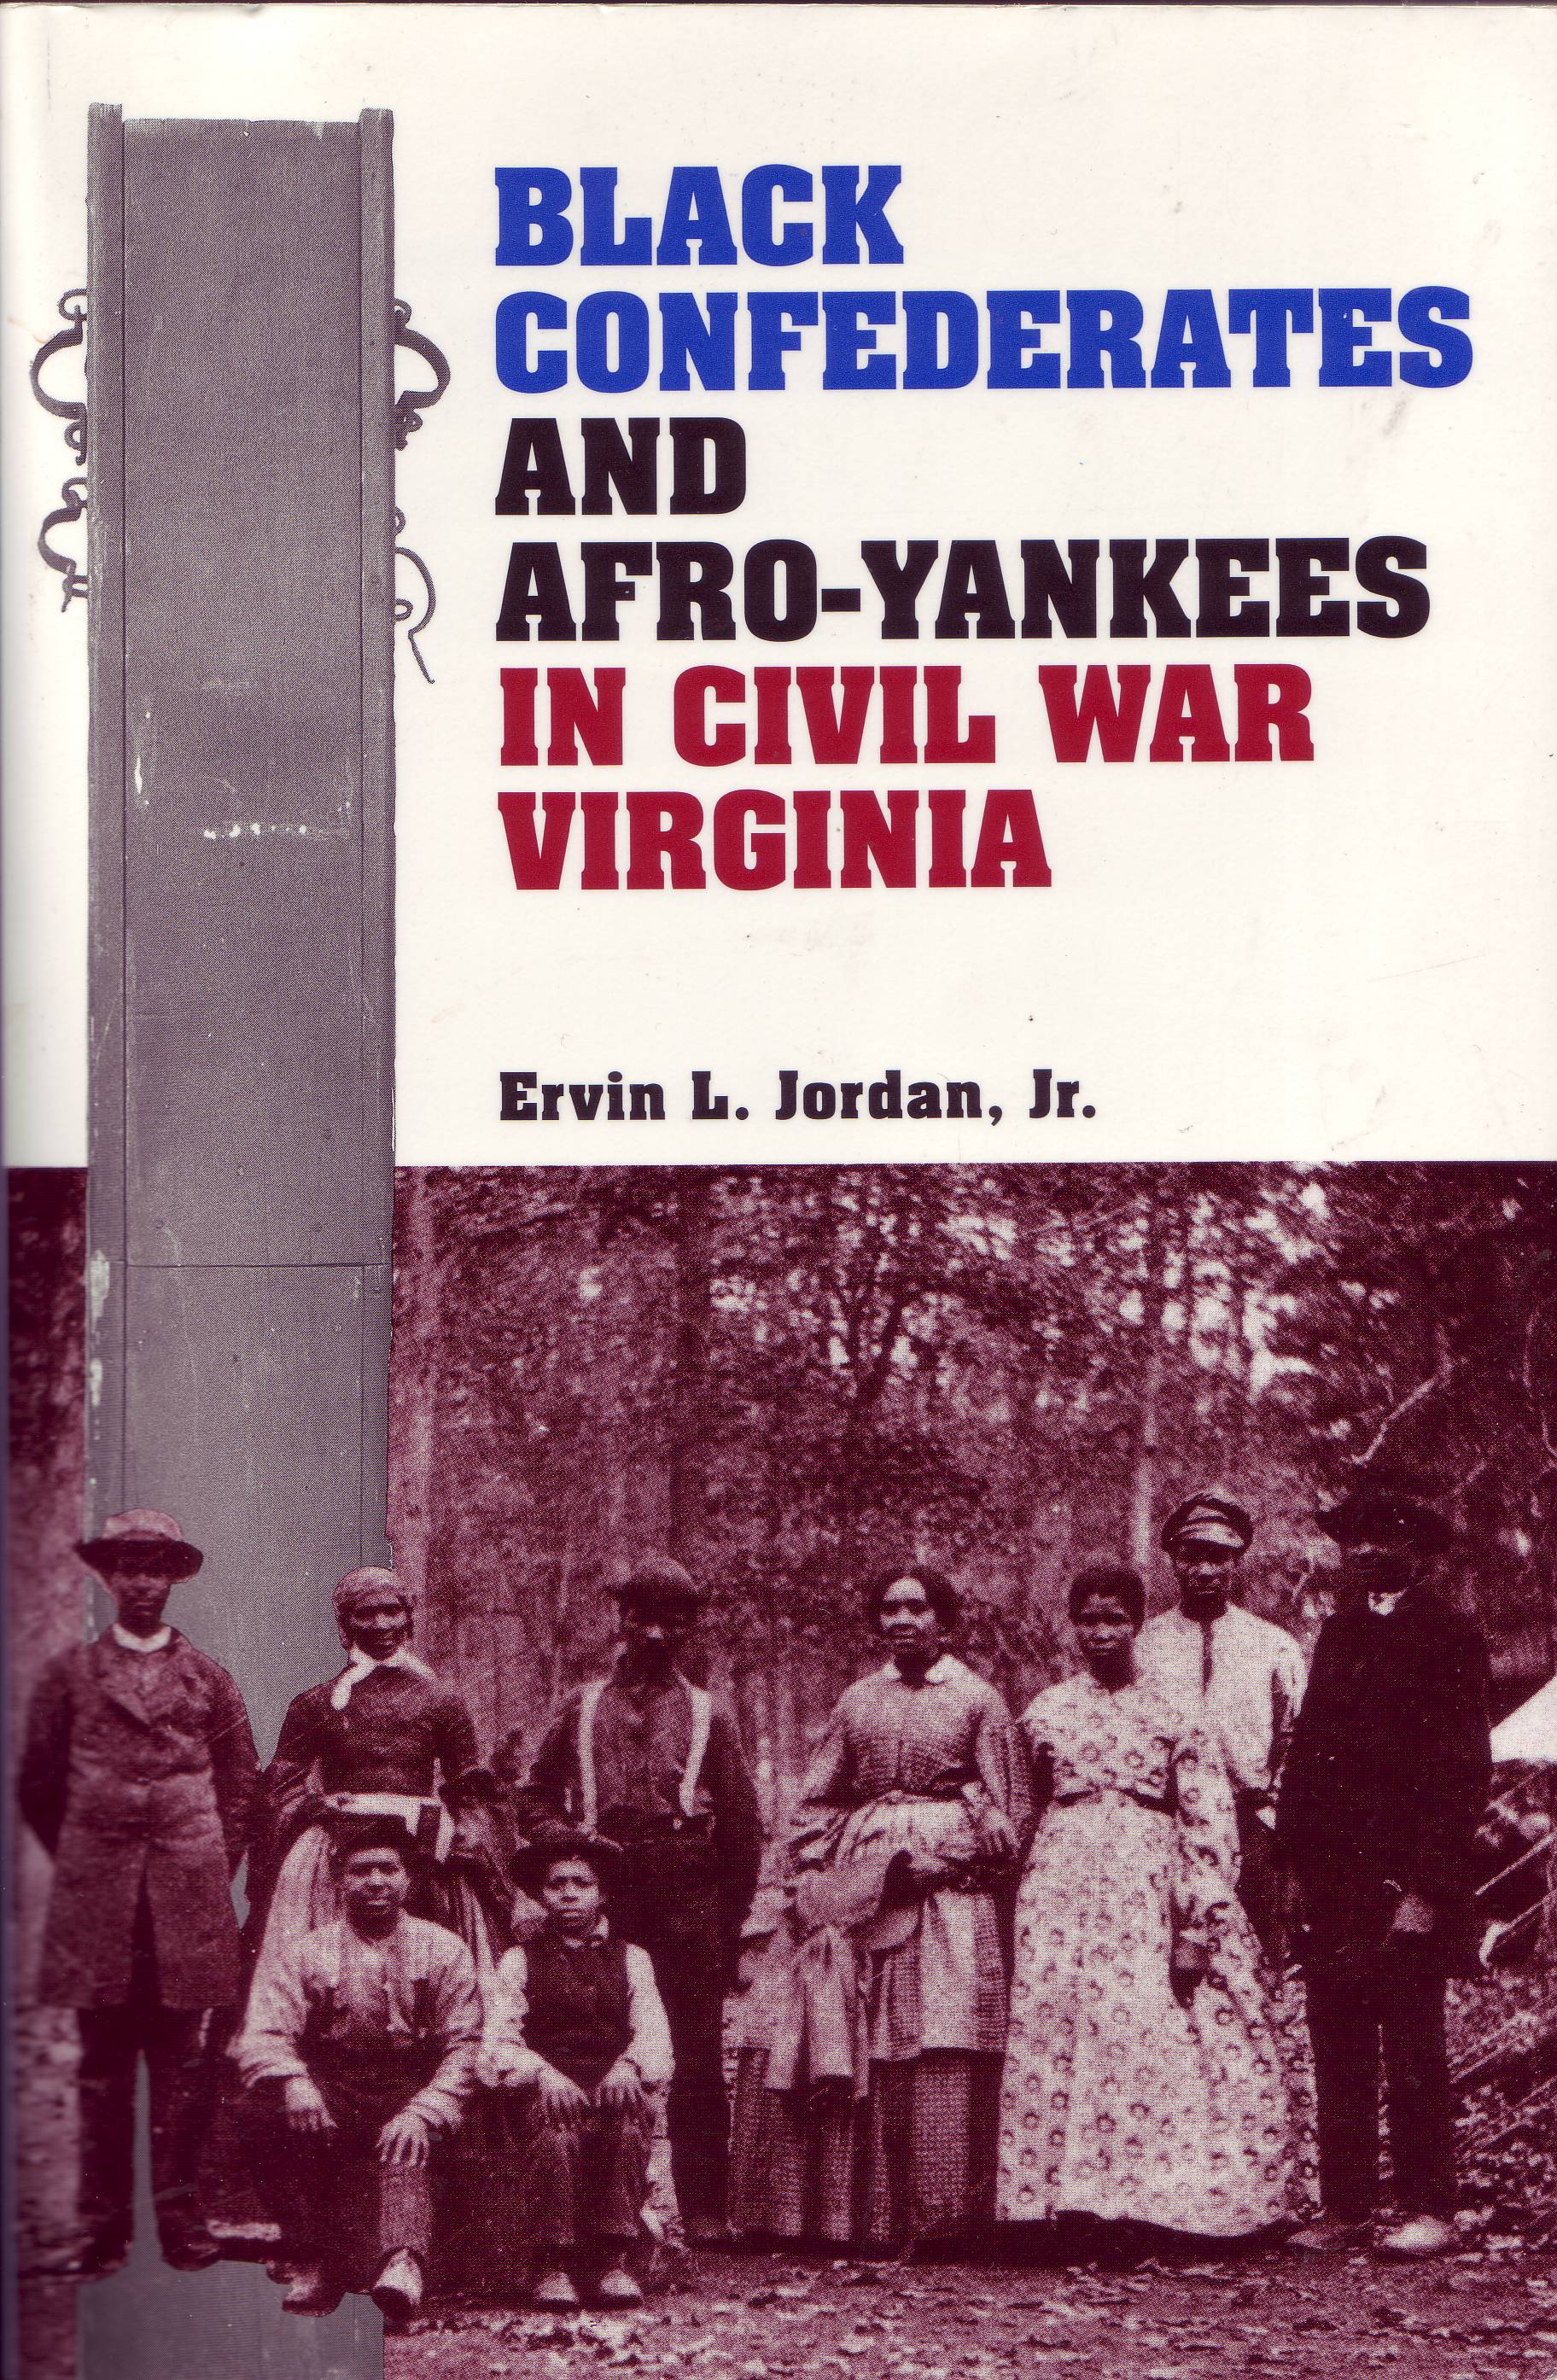 a look at the reasons why the confederacy lost in the civil war An extensive amount of effort has gone into studying the american civil war the reasons for the war and its outcome remain hotly debated the following are nine of the many arguments that have been put forward for why the confederacy lost.